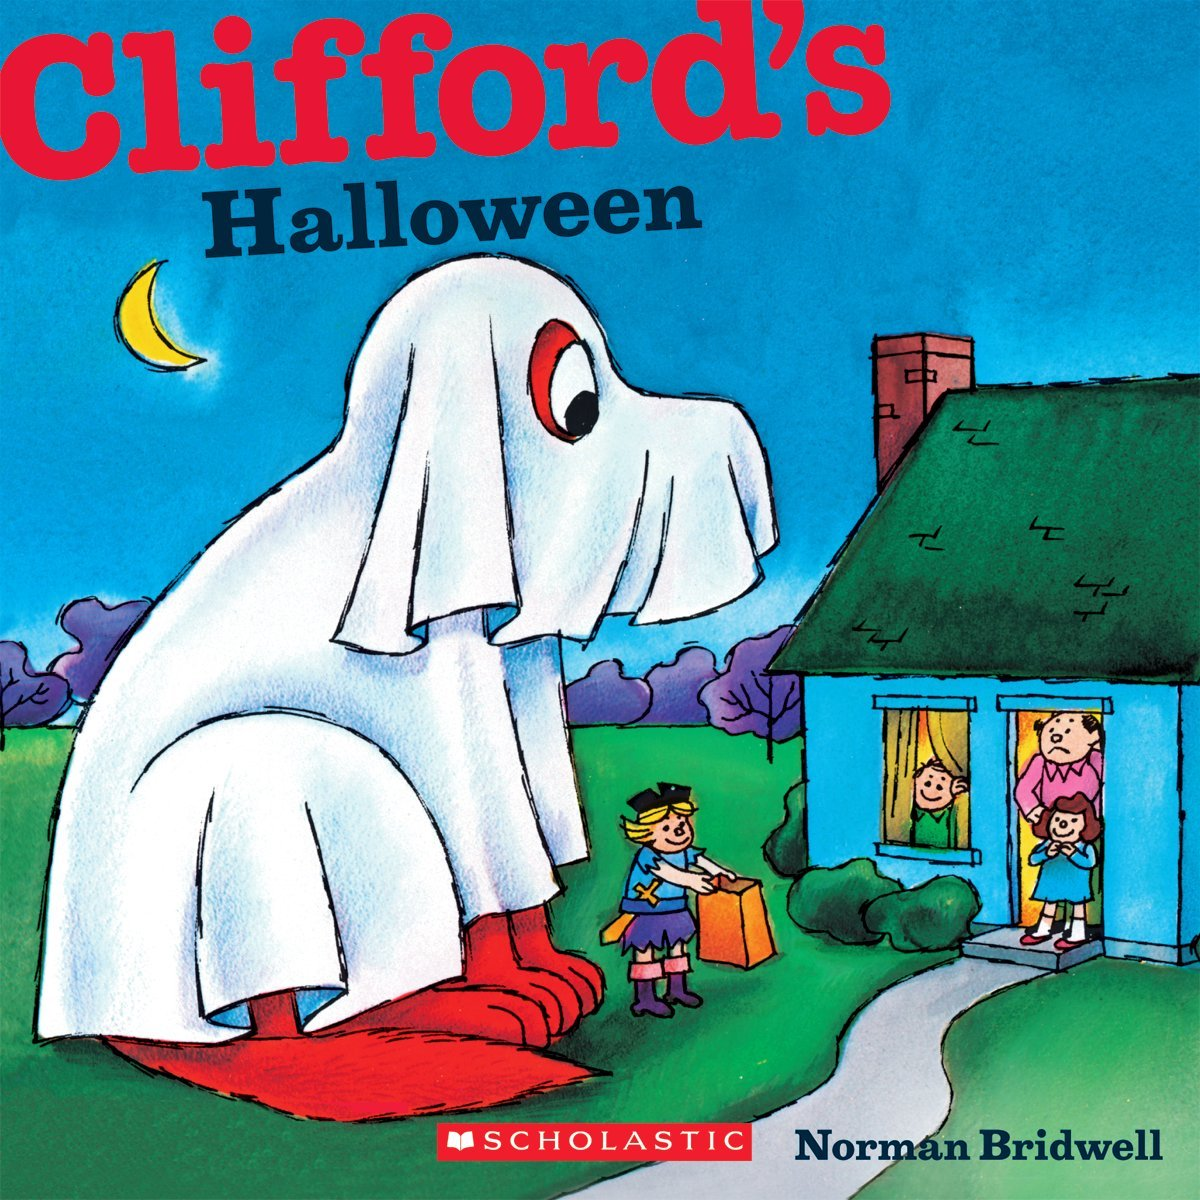 cliffords halloween norman bridwell 9780545215954 amazoncom books